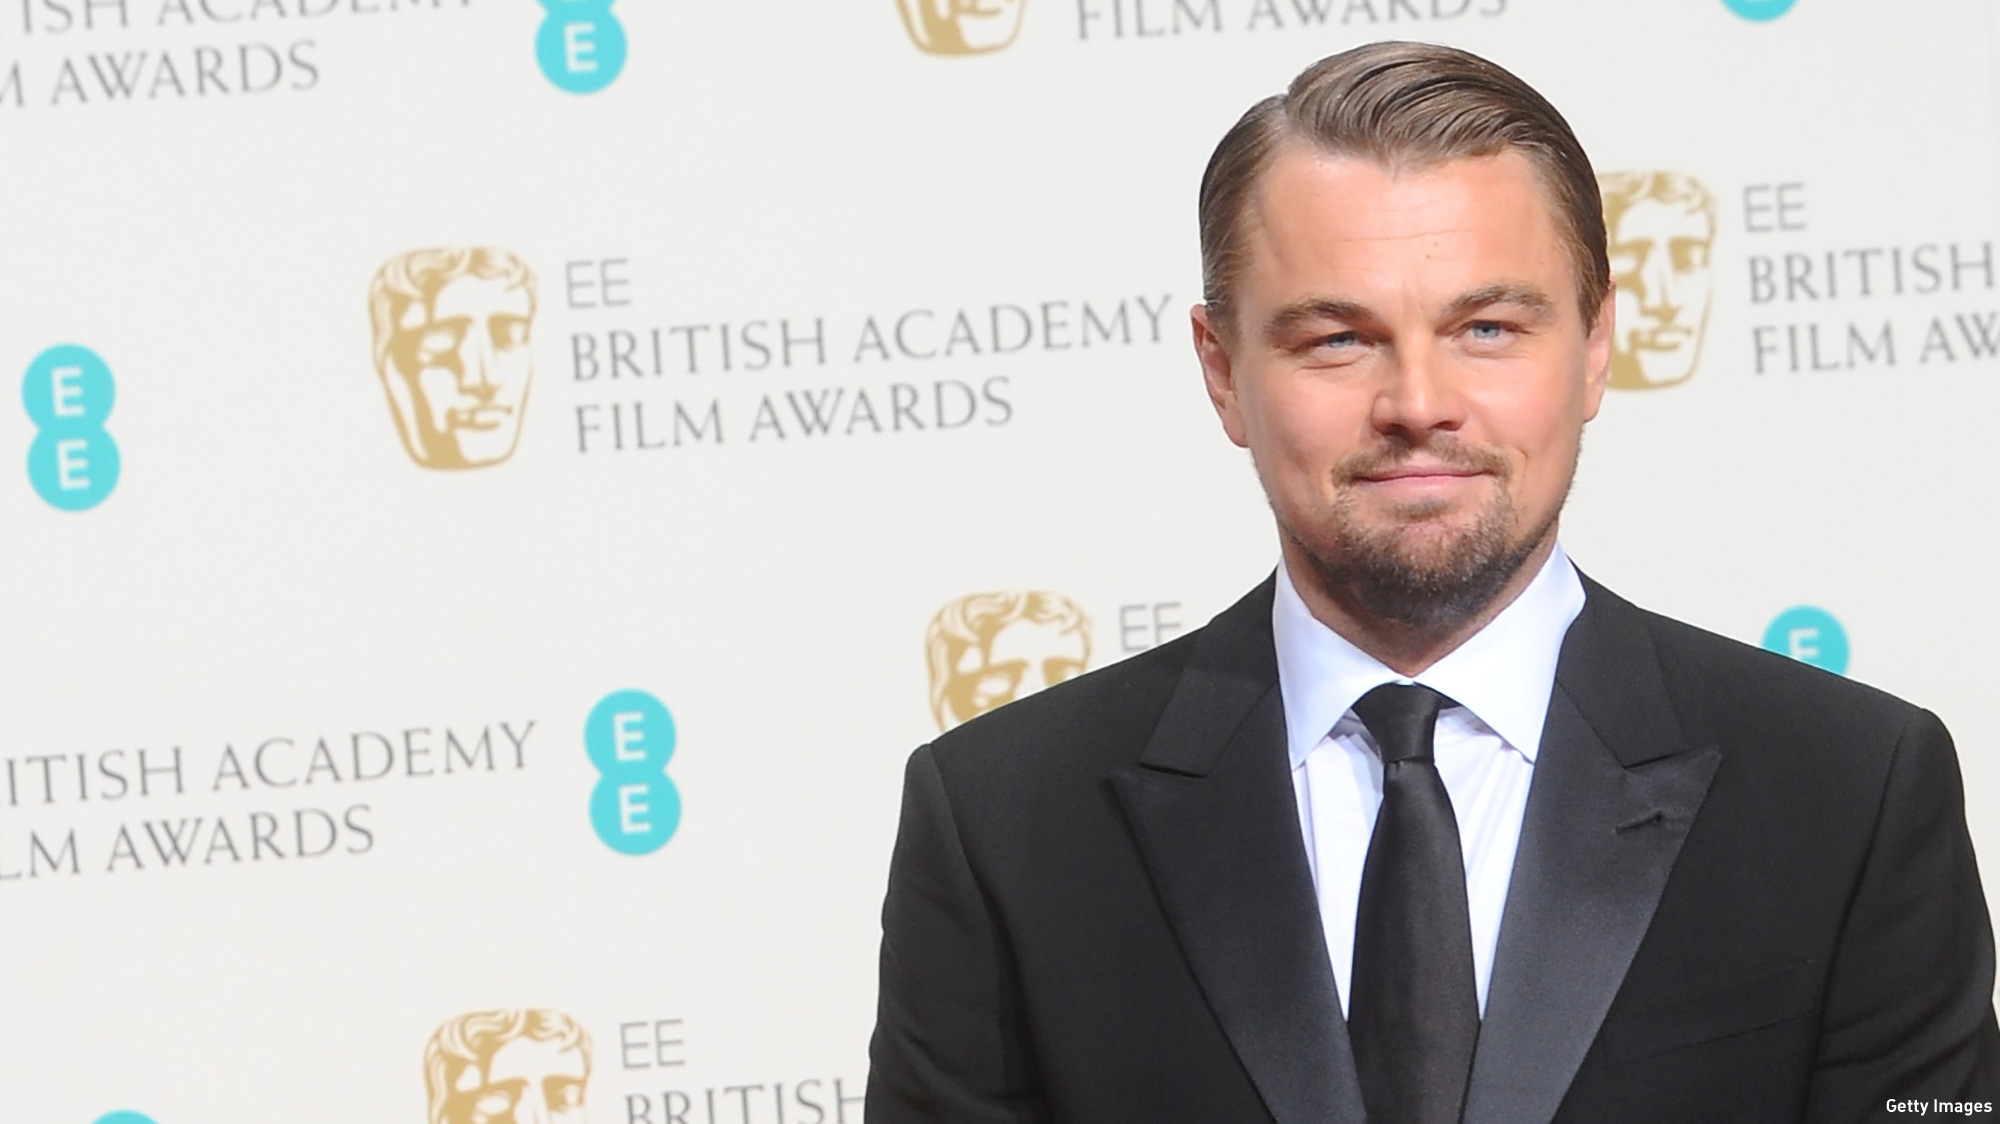 Leonardo DiCaprio at the 2014 EE British Academy Film Awards.  (Photo: Anthony Harvey/Getty Images)